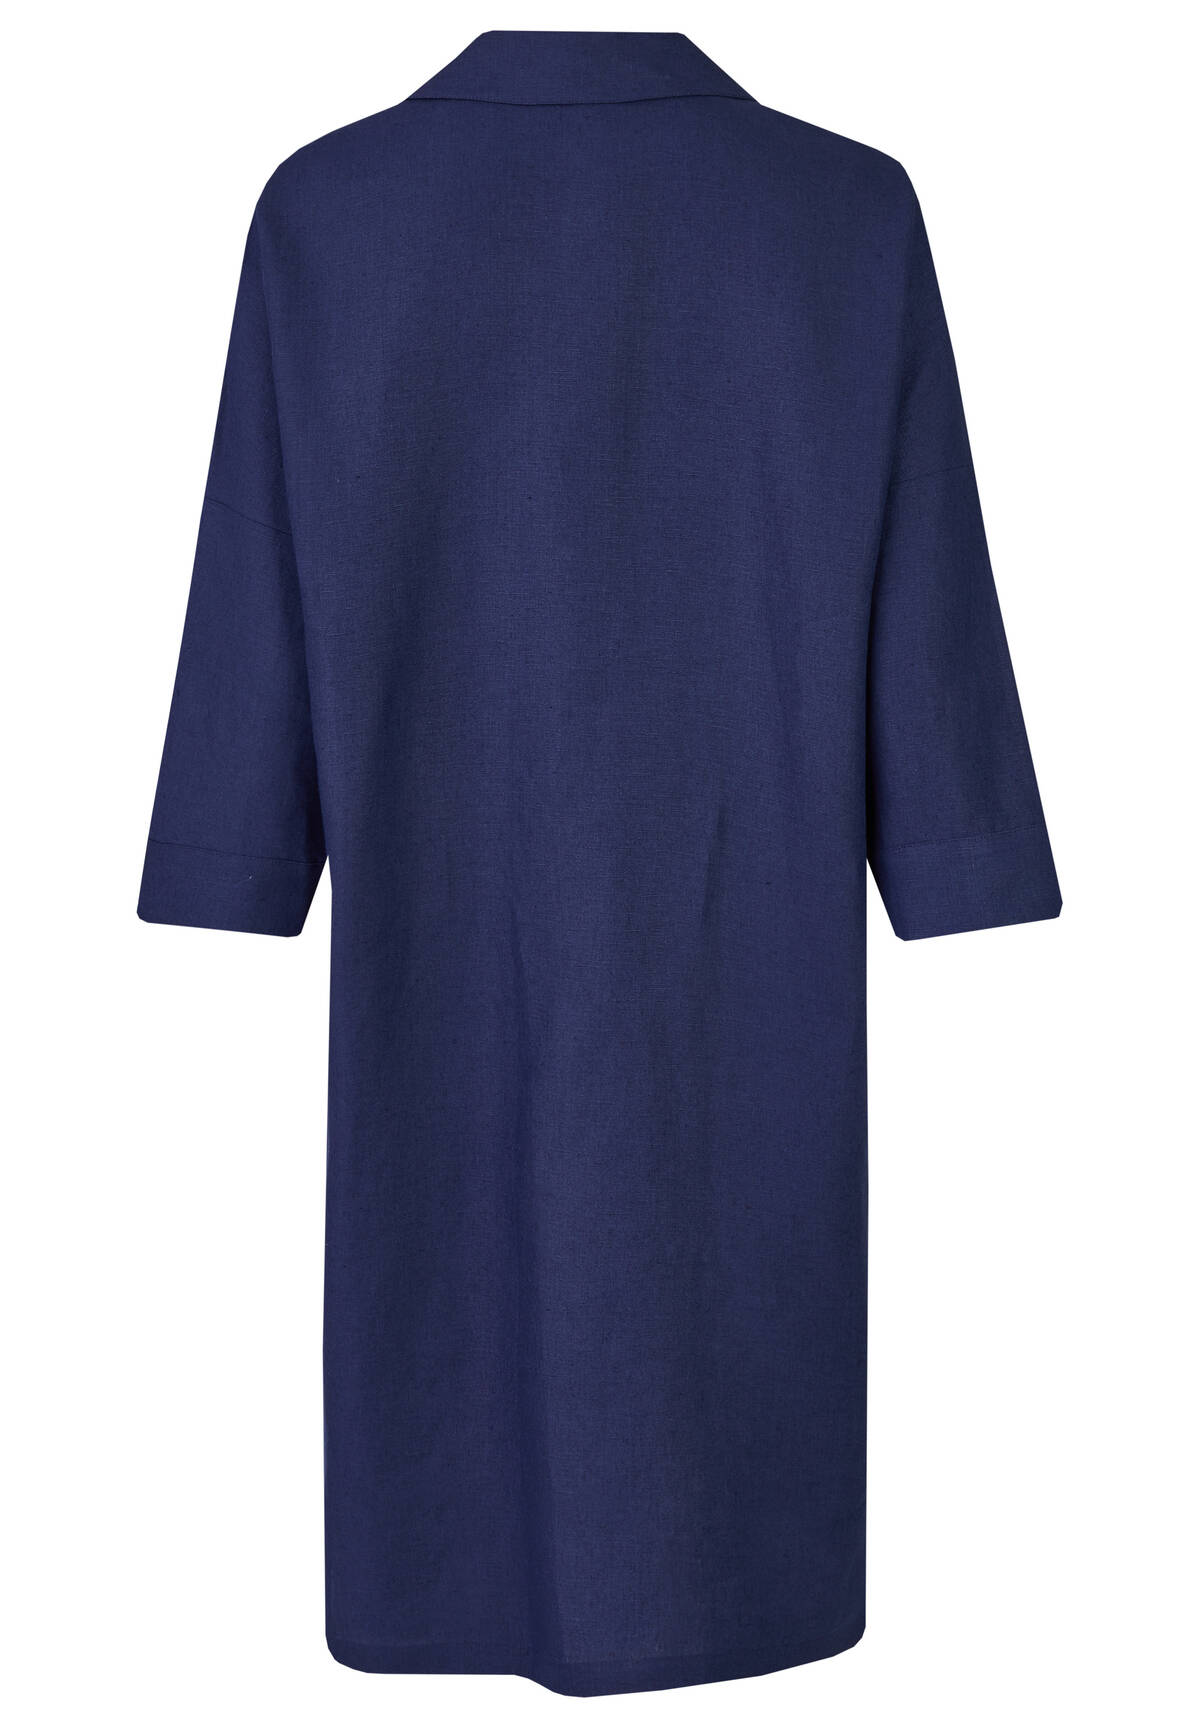 Tunikakleid aus Leinen / Linen Dress